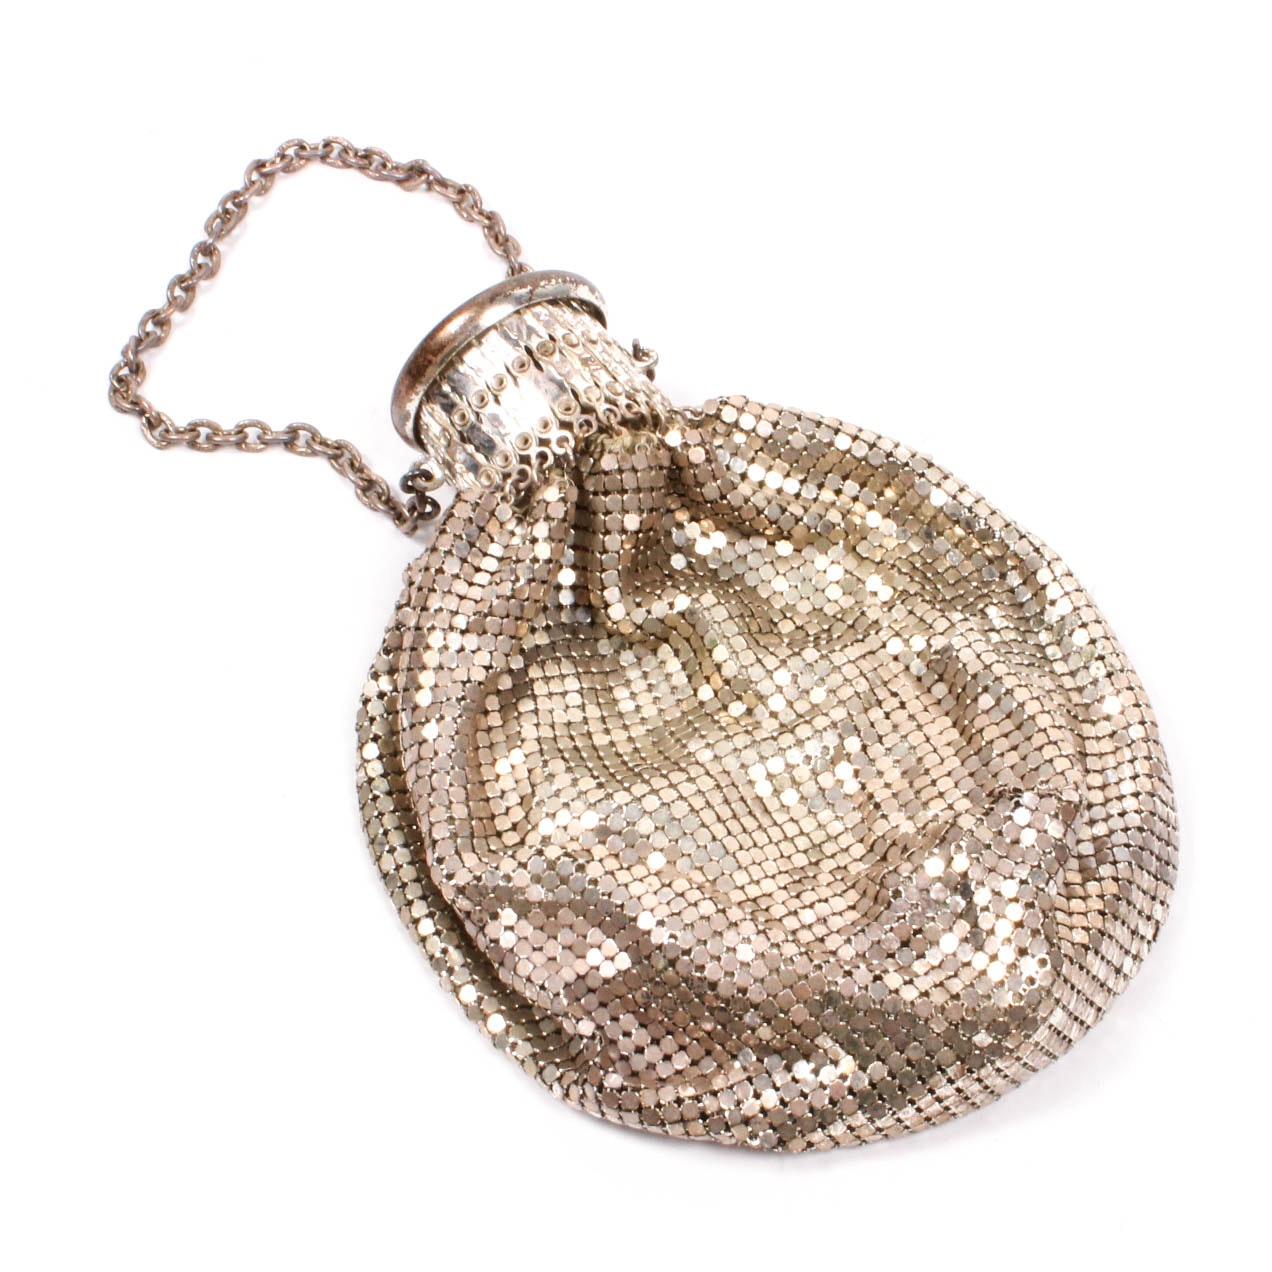 Early 20th Century Silver Tone Mesh Gate Top Bag